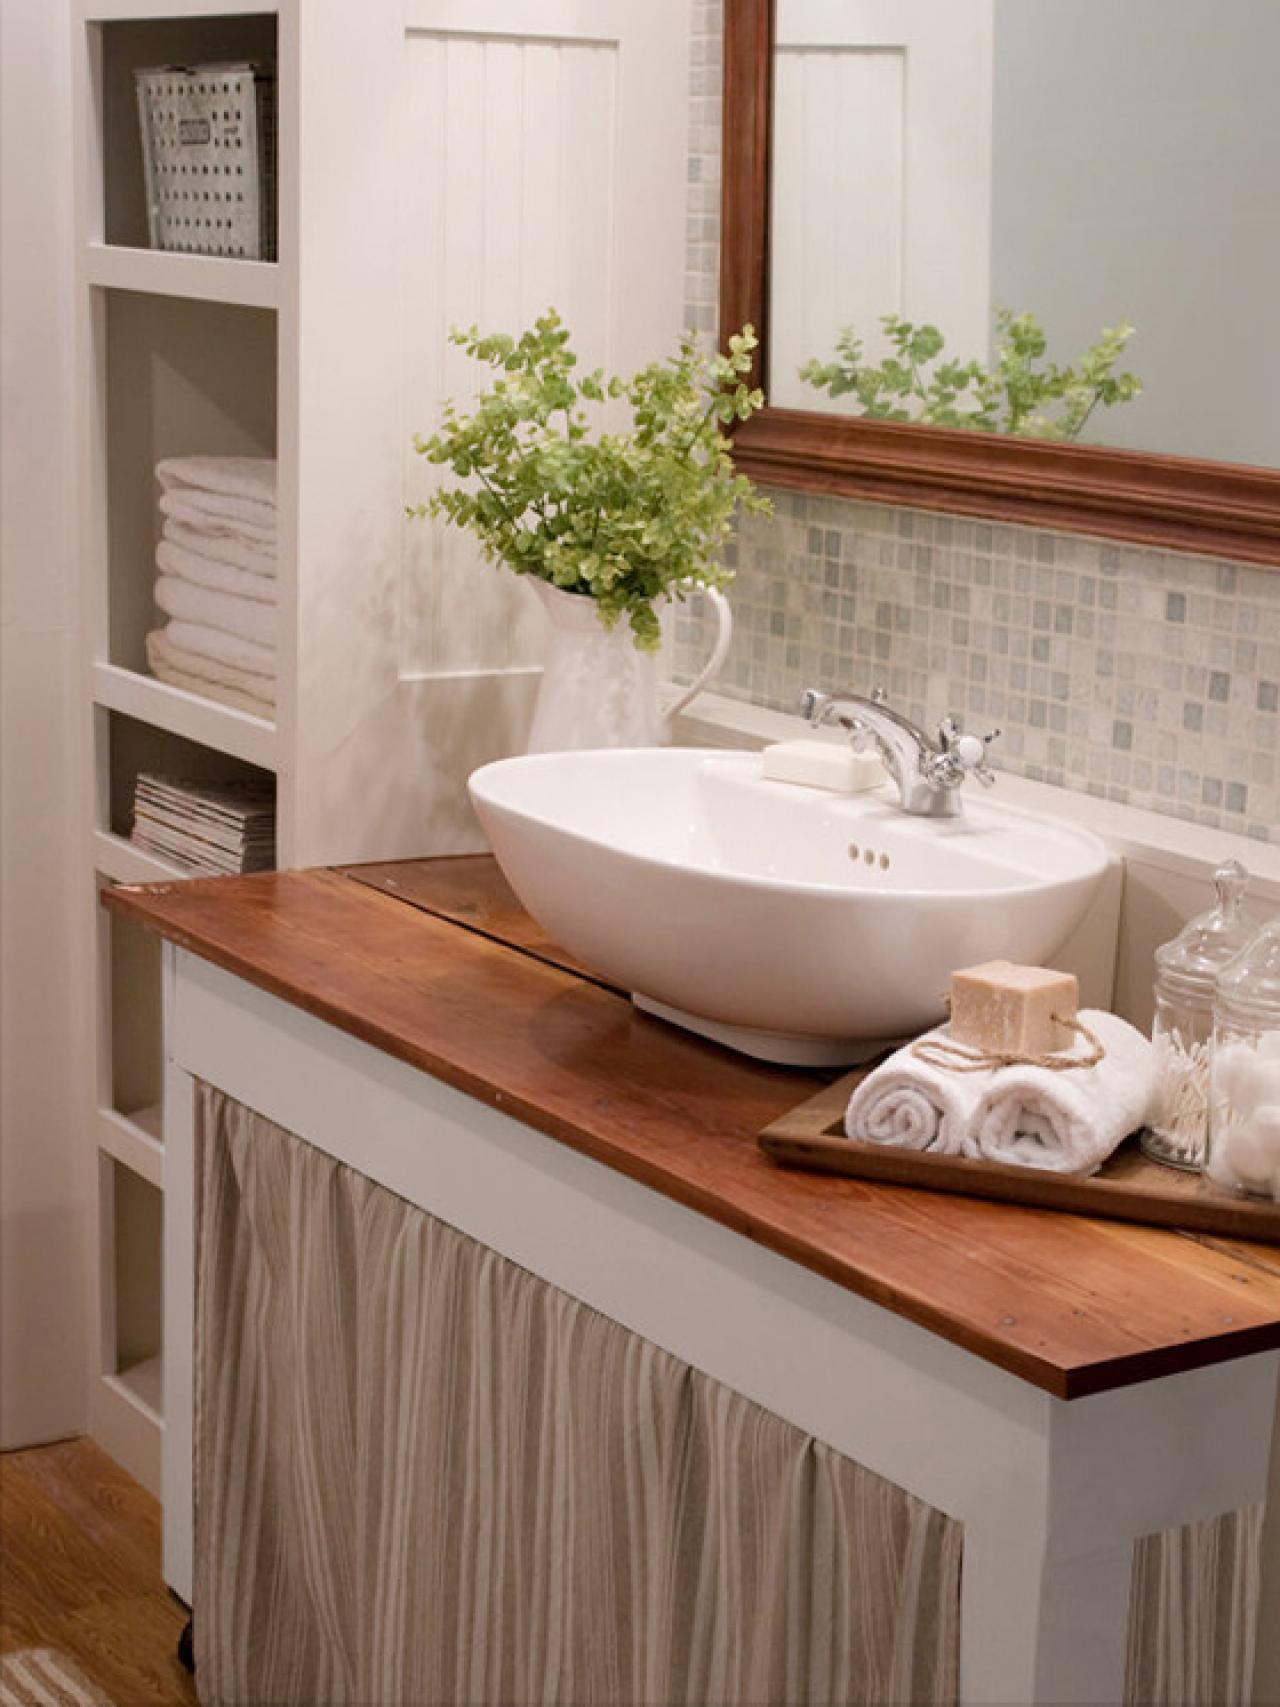 Small Bathroom Decorating Ideas HGTV - Bathroom accessories for small bathroom ideas